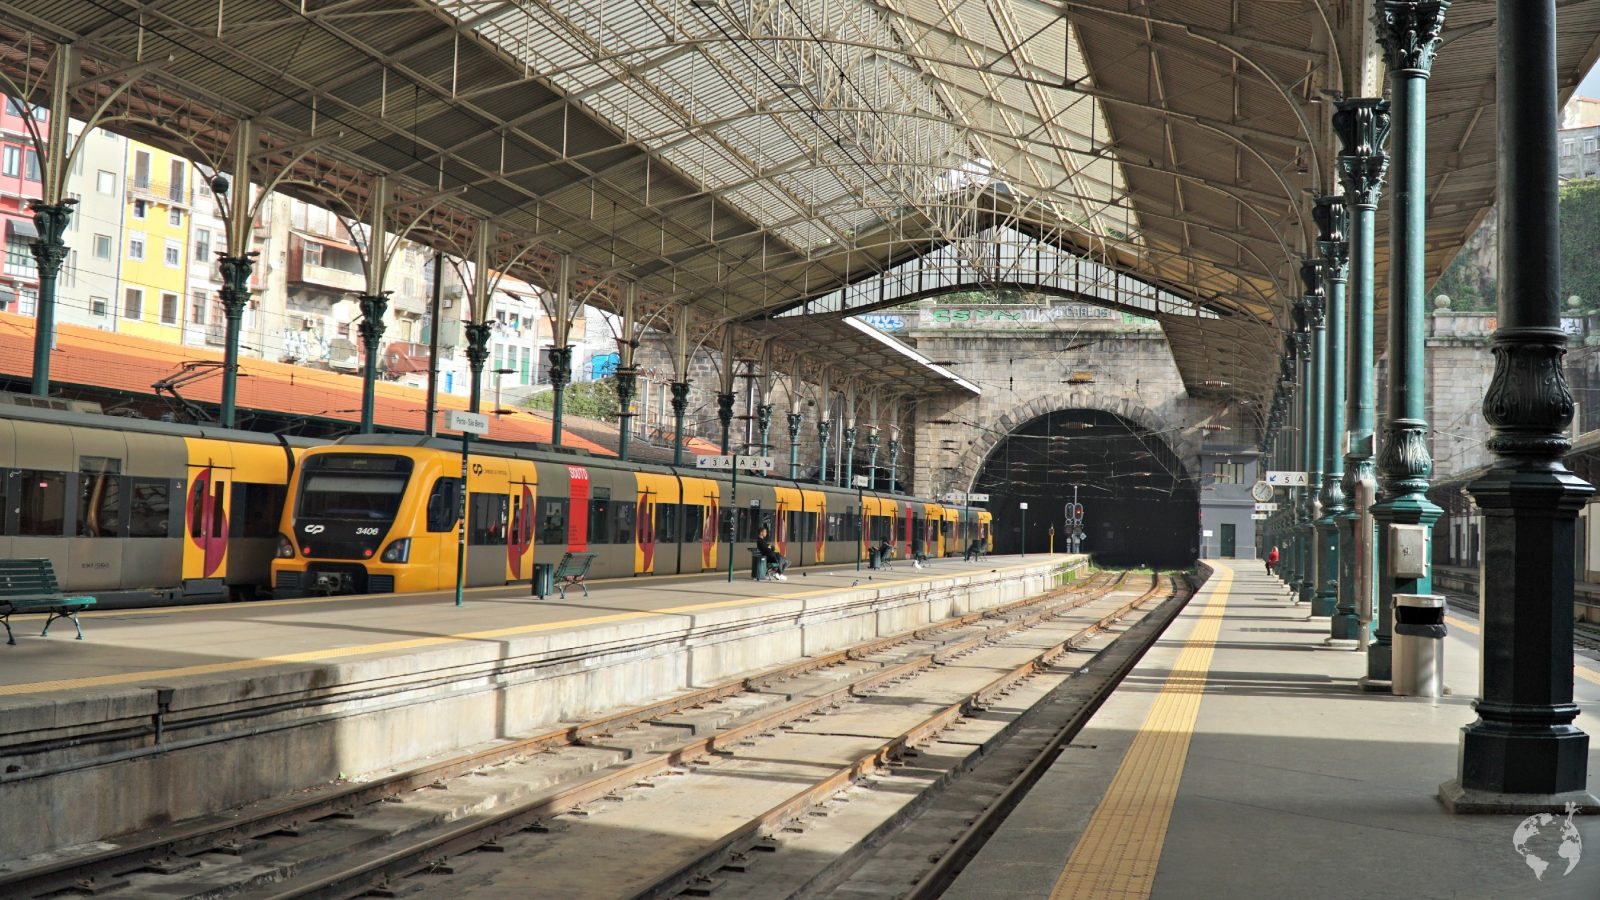 interrail itinerary beautiful station porto europe